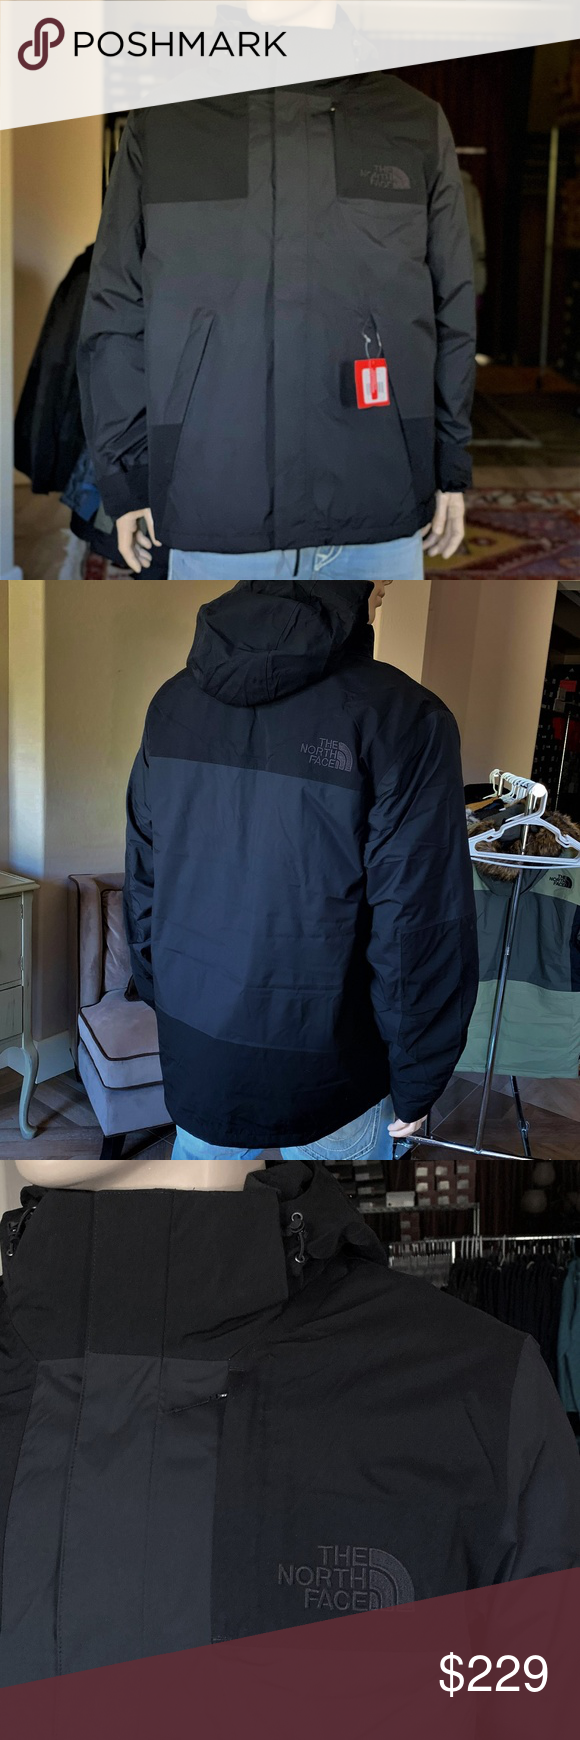 The North Face Bandon Triclimate 3 In 1 Jacket 3 In 1 Jacket Triclimate Jacket Jackets [ 1740 x 580 Pixel ]